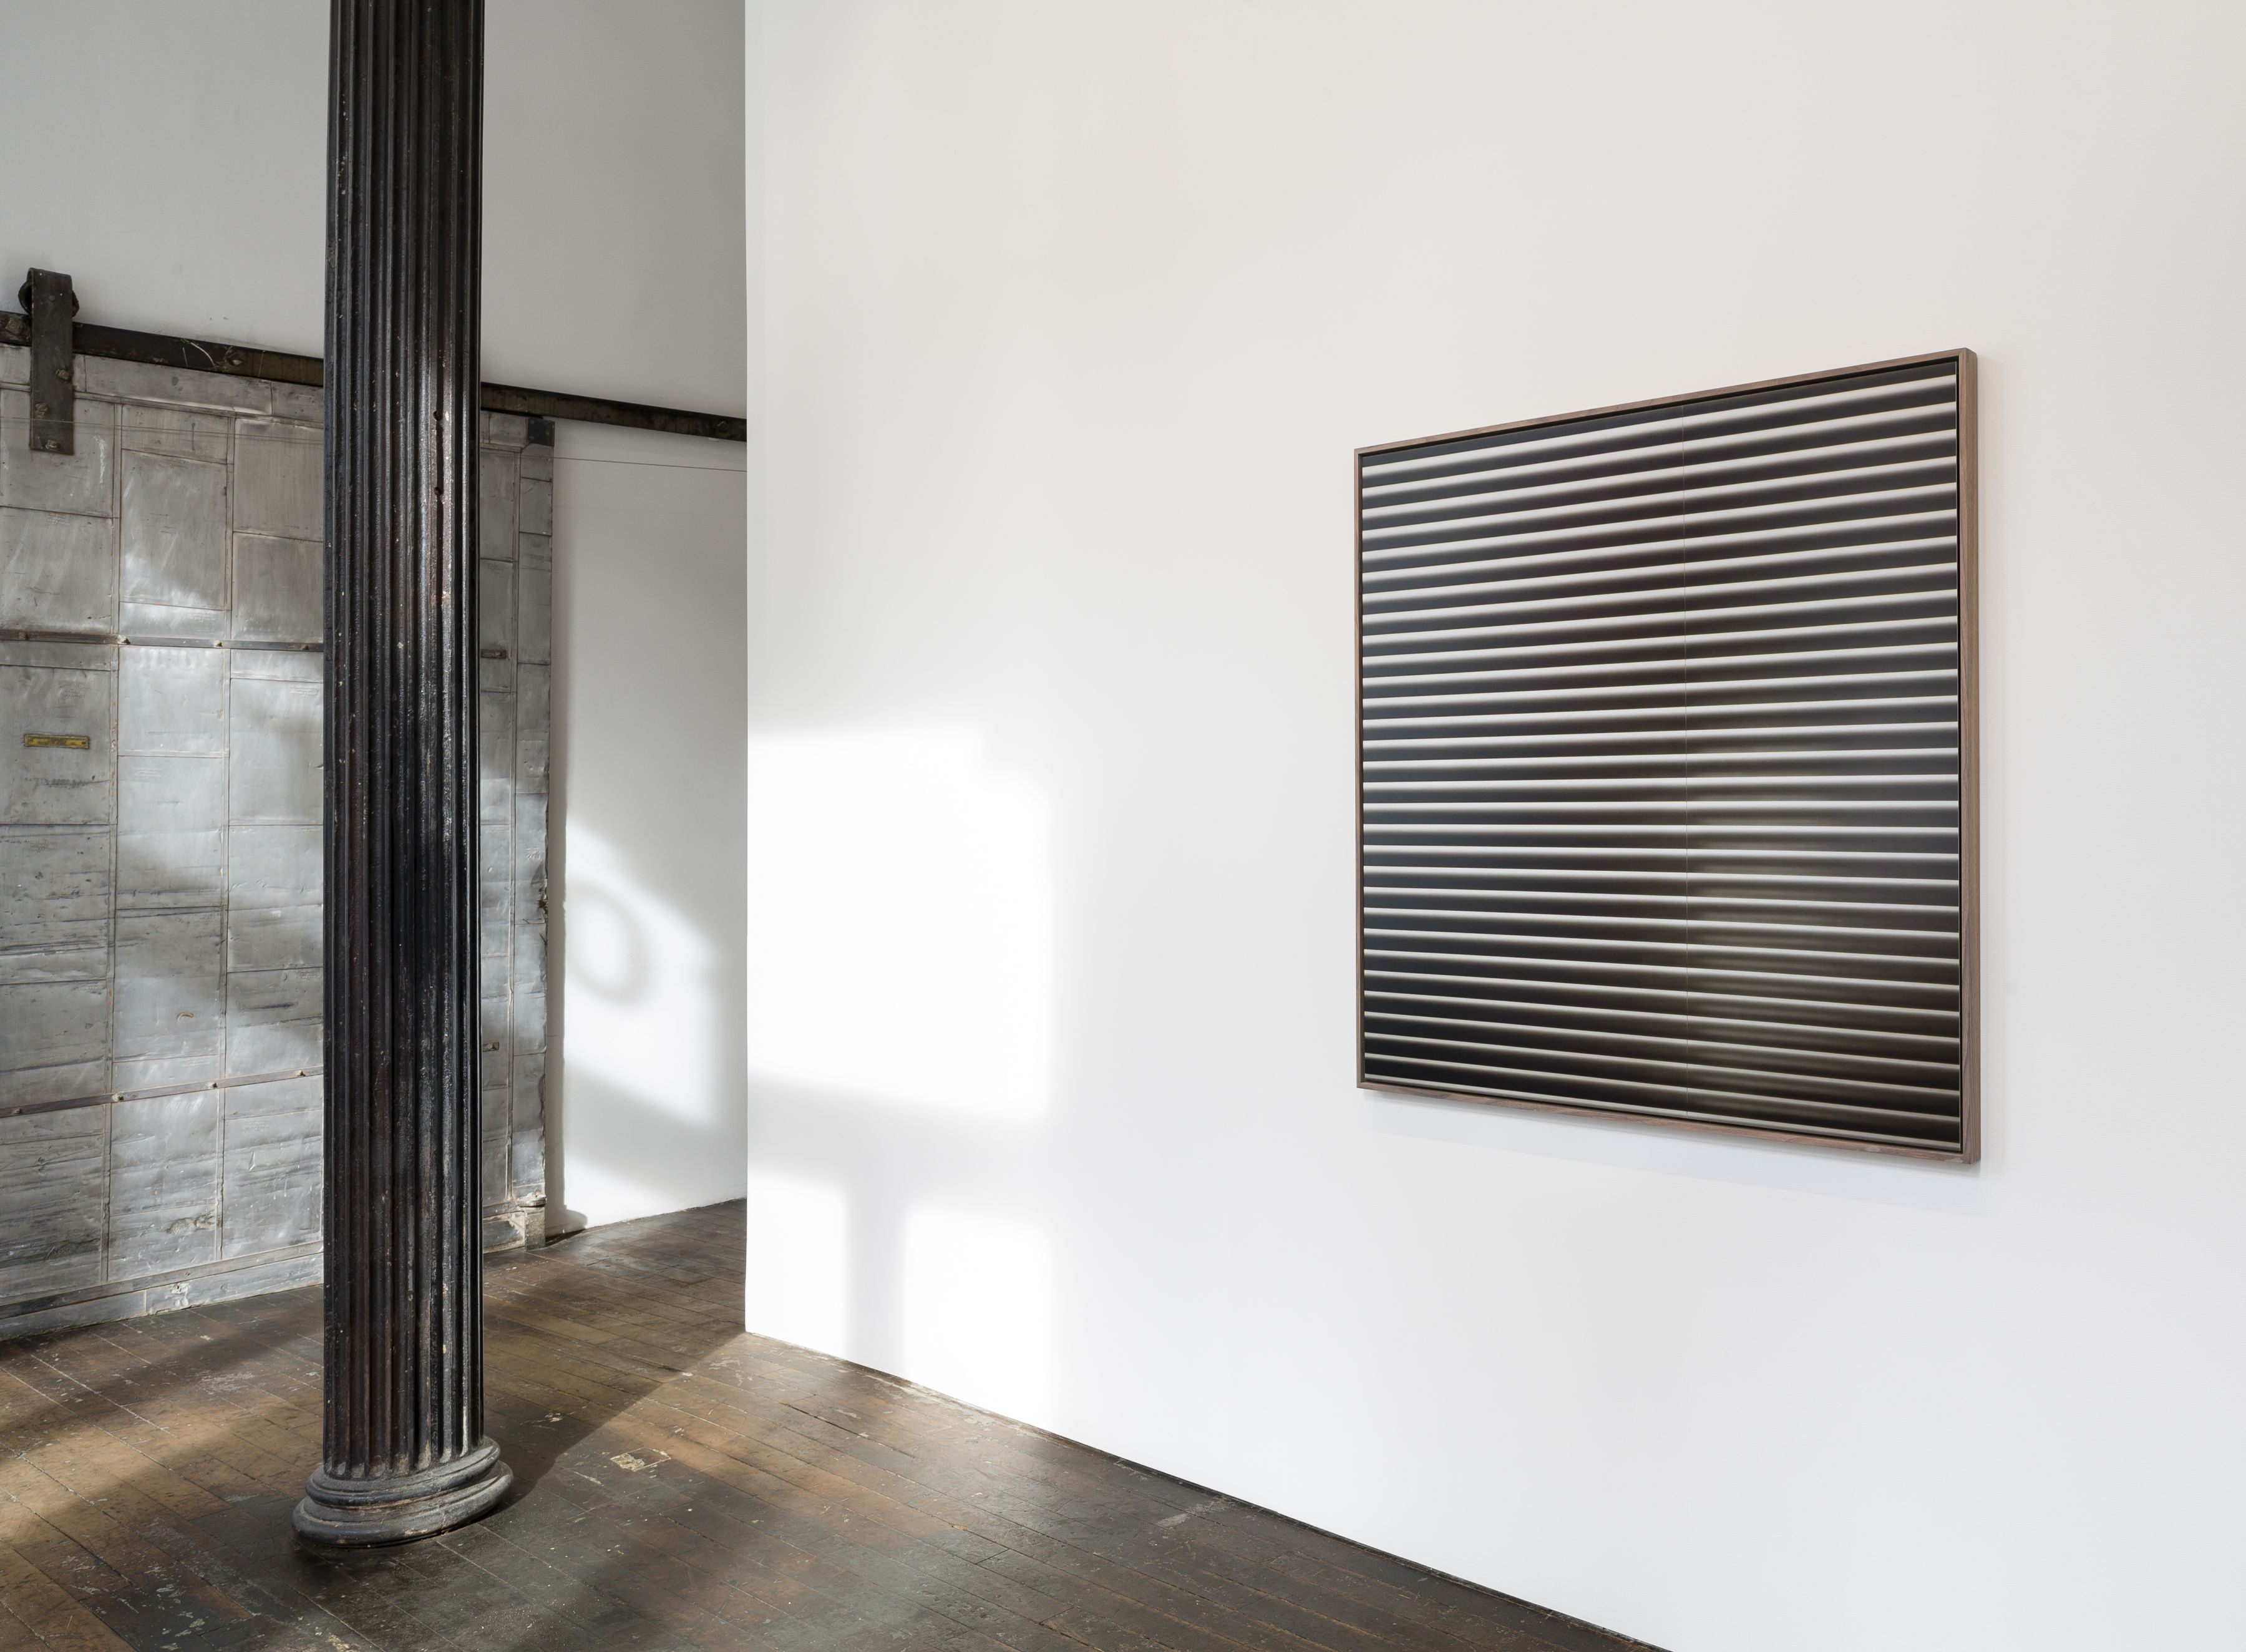 Jan Dibbets: Representations of Reality– installation view 2